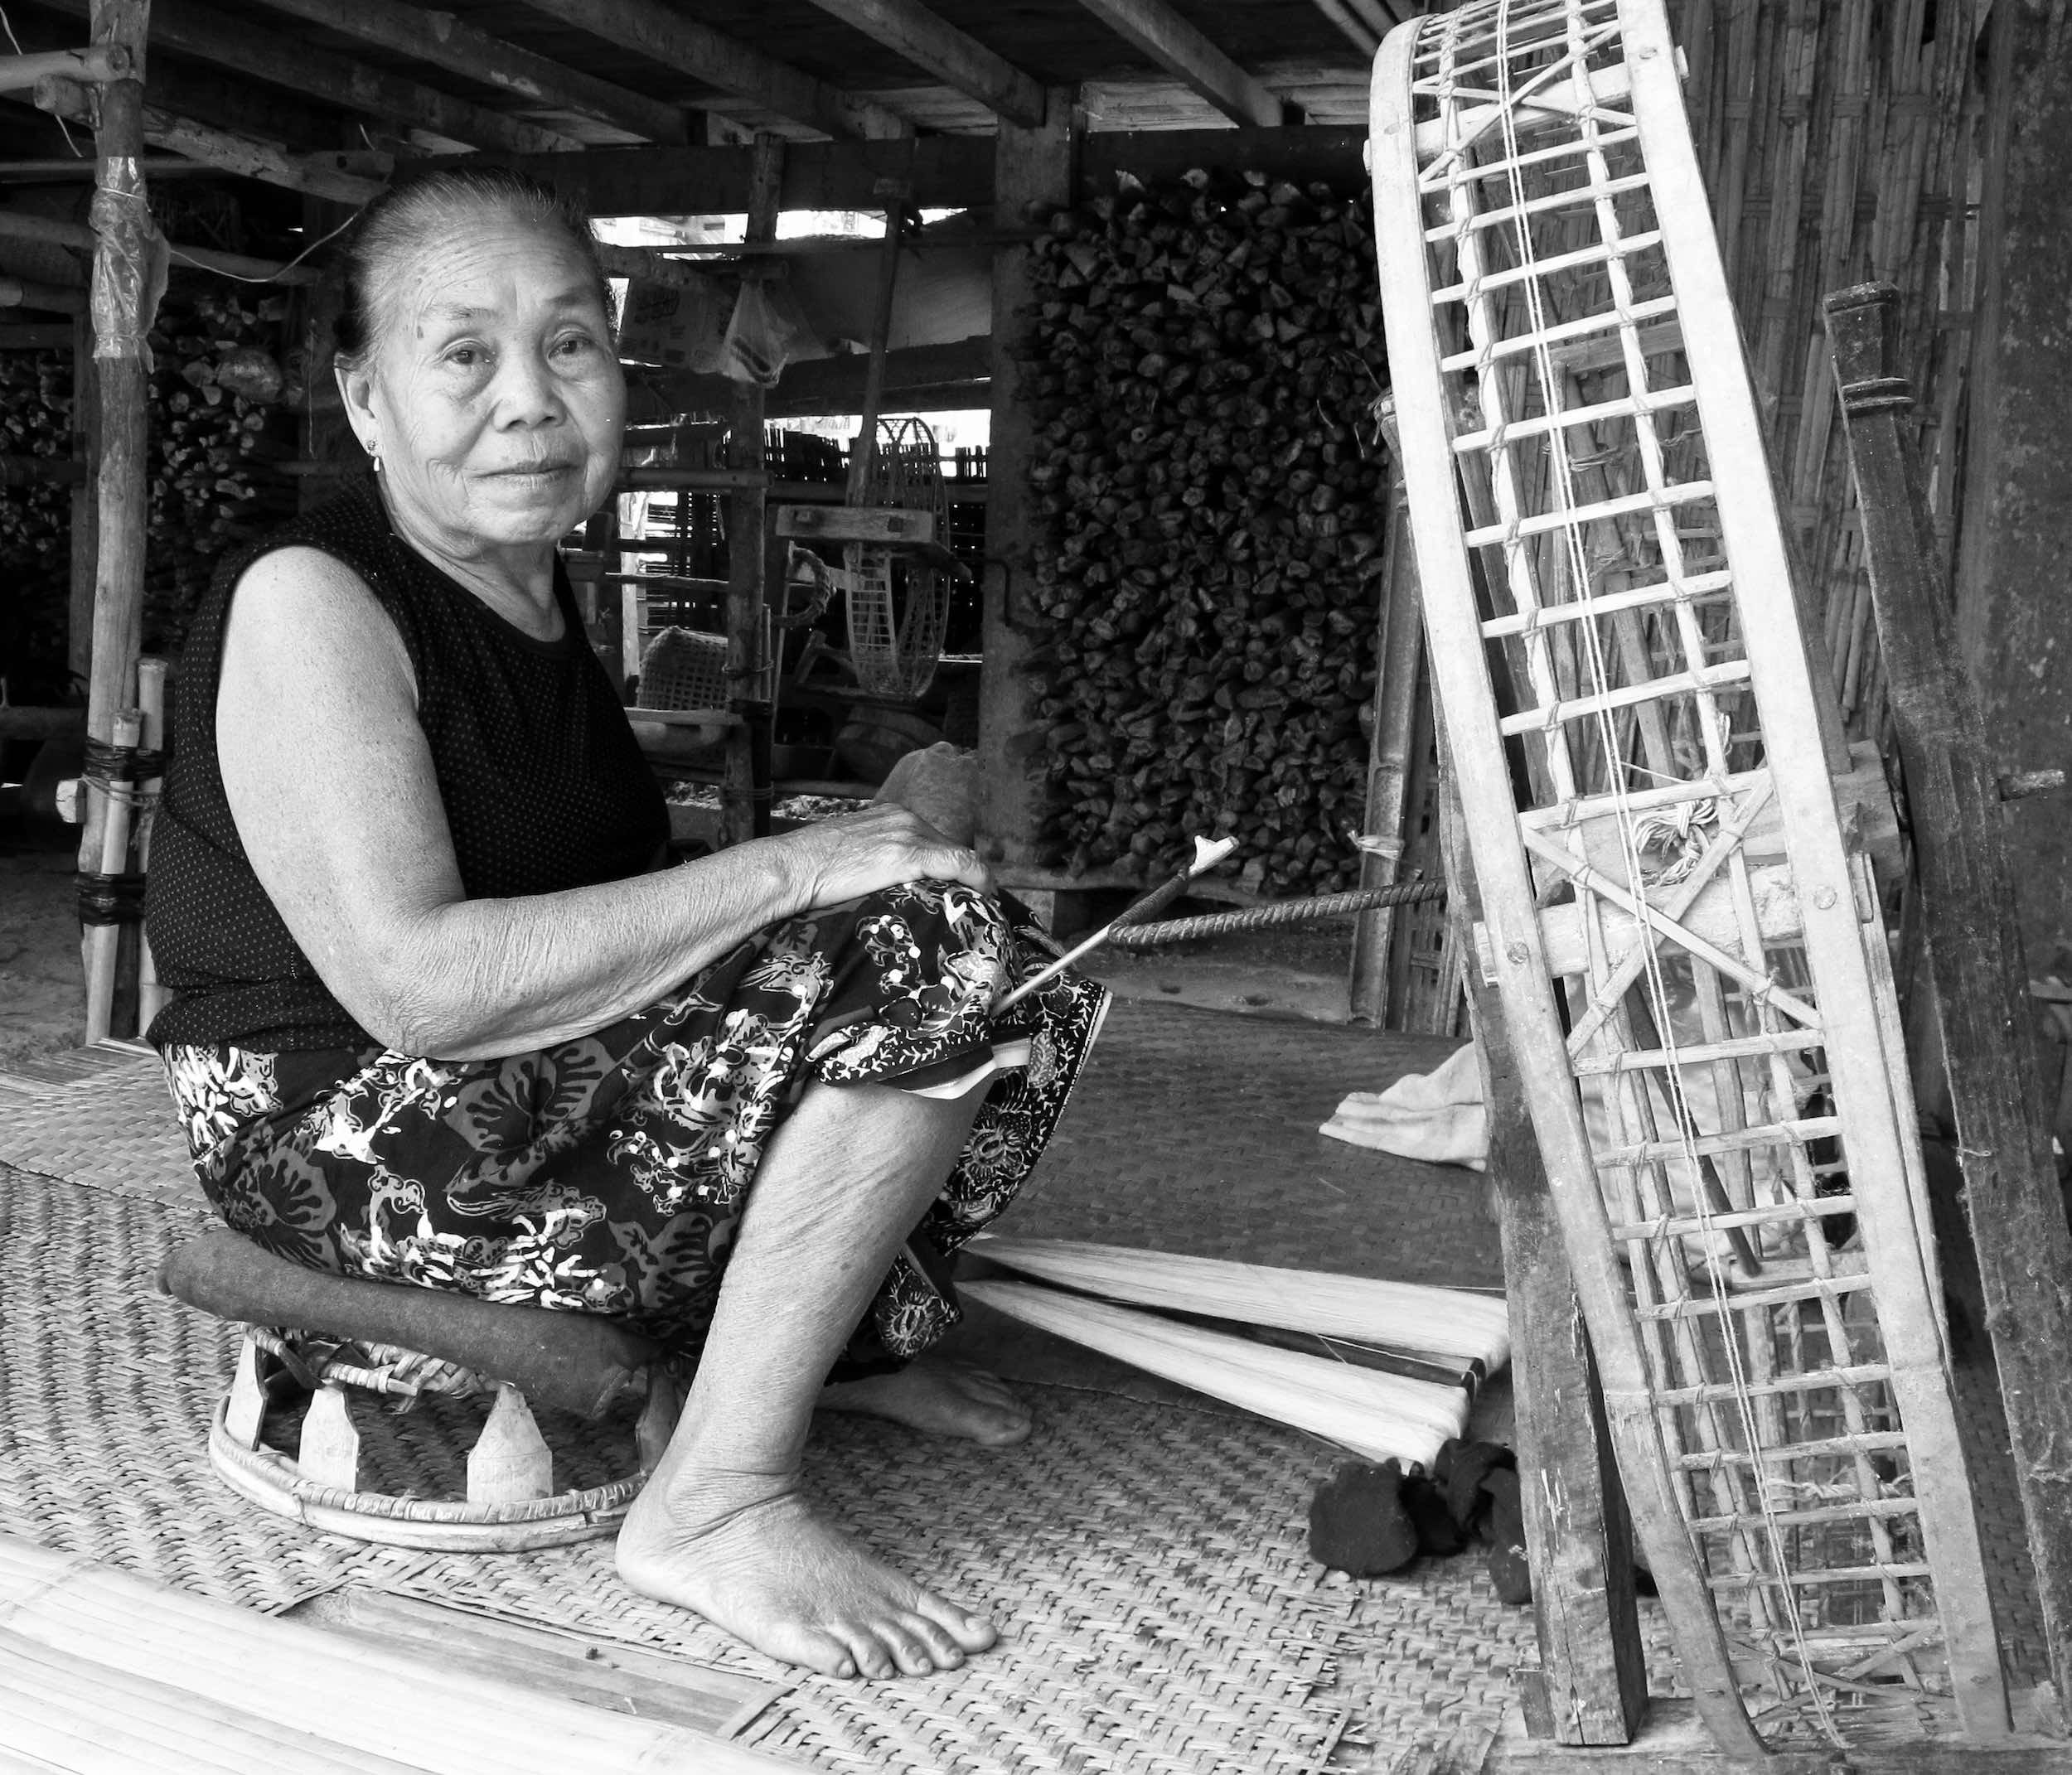 Walking around the Tai Lue village of Nayang Tai we met En, one of the many weavers there, who showed us spinning cotton into thread for weaving. Read more in our blog here:  A Chance to Go Back to a Tai Lue Weaving Village